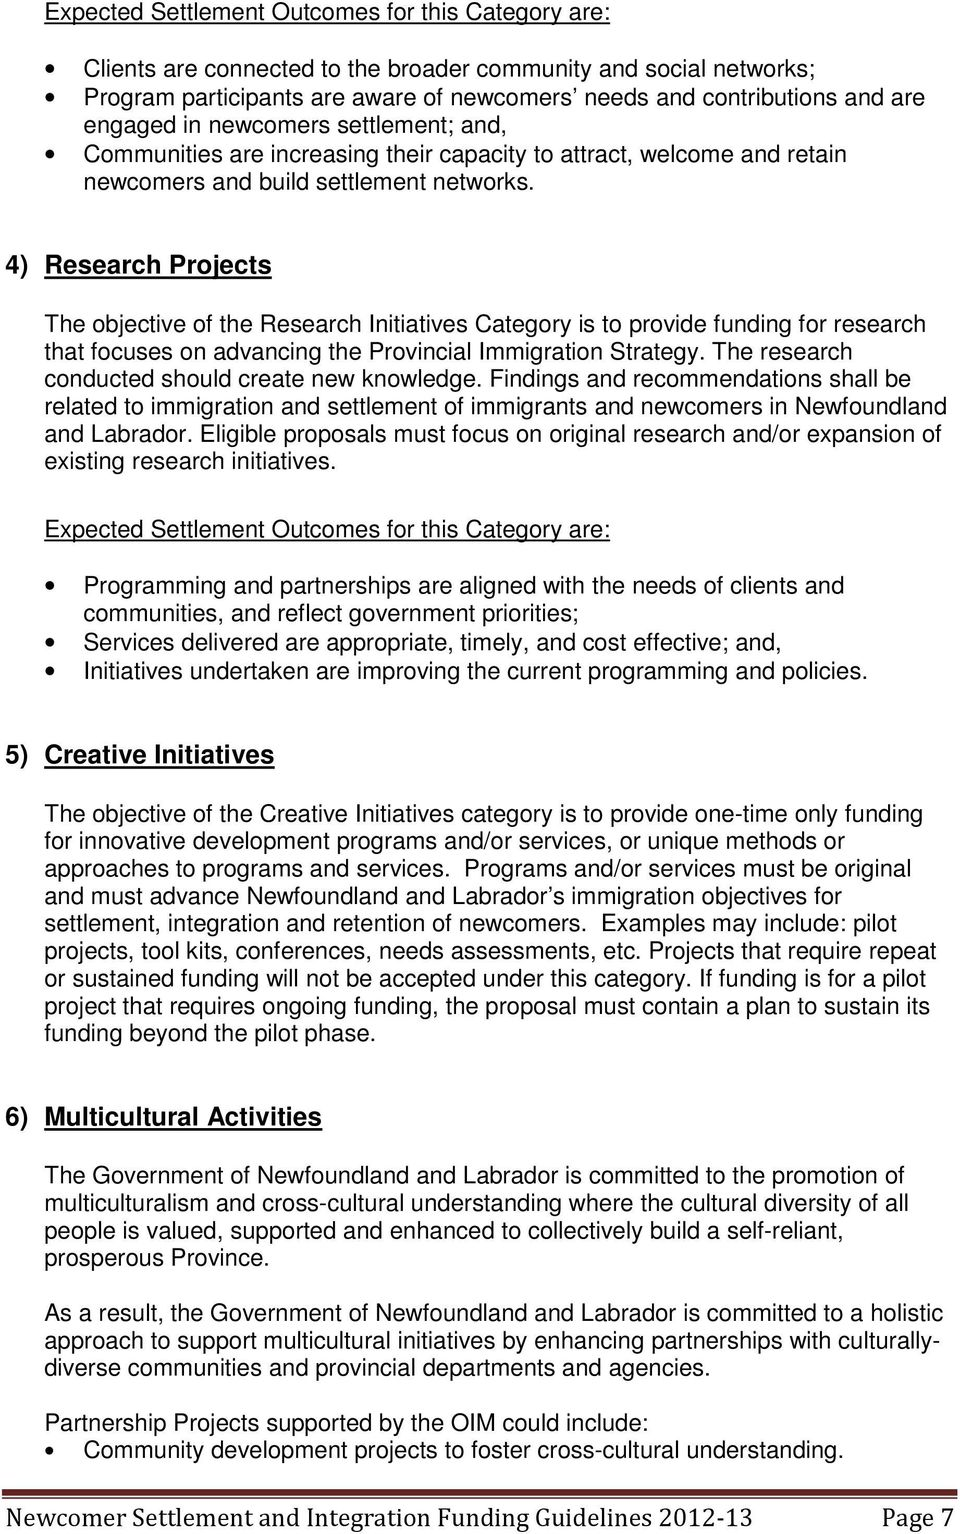 4) Research Projects The objective of the Research Initiatives Category is to provide funding for research that focuses on advancing the Provincial Immigration Strategy.